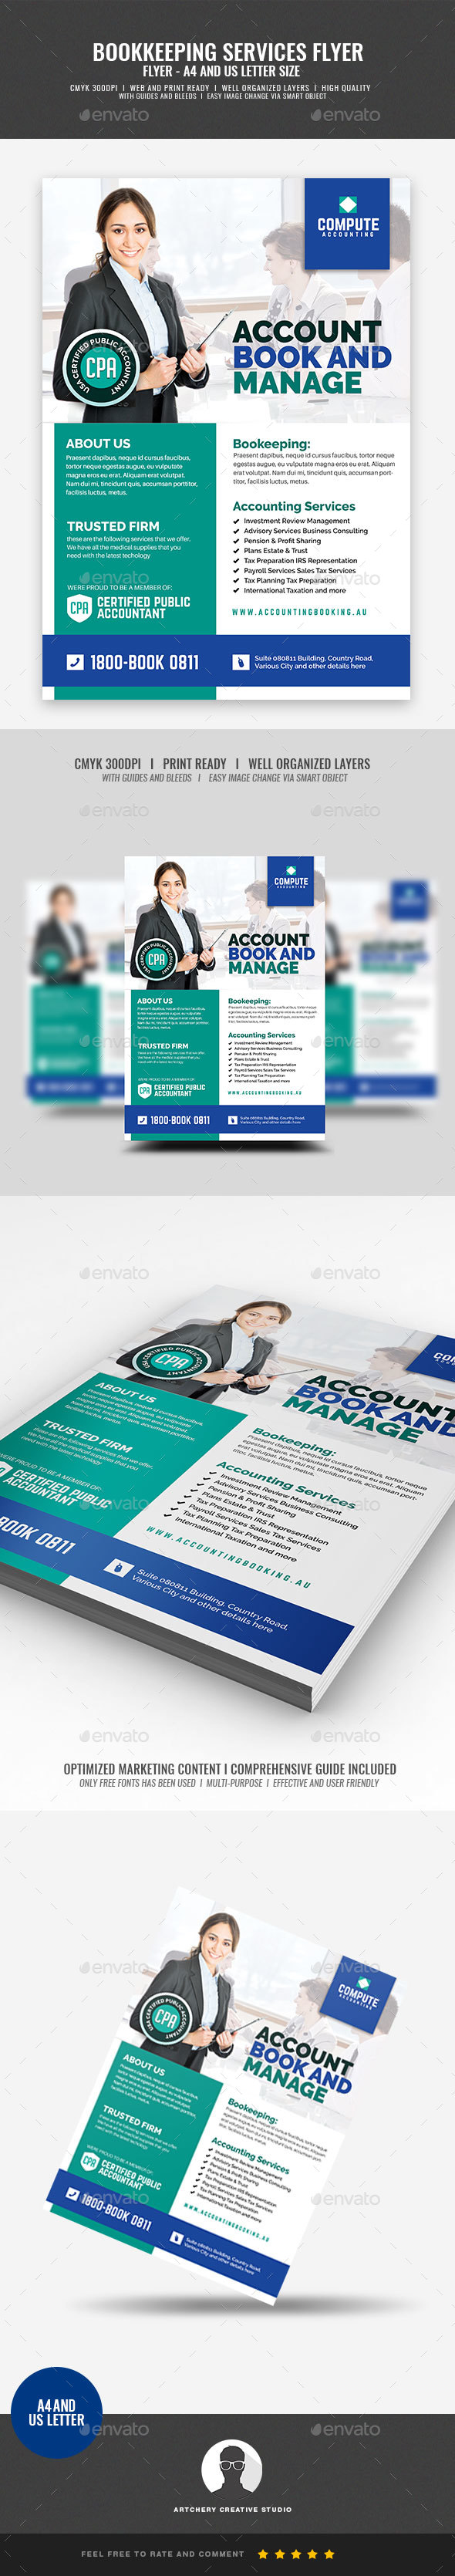 Accounting and Bookkeeping Services Flyer - Corporate Flyers